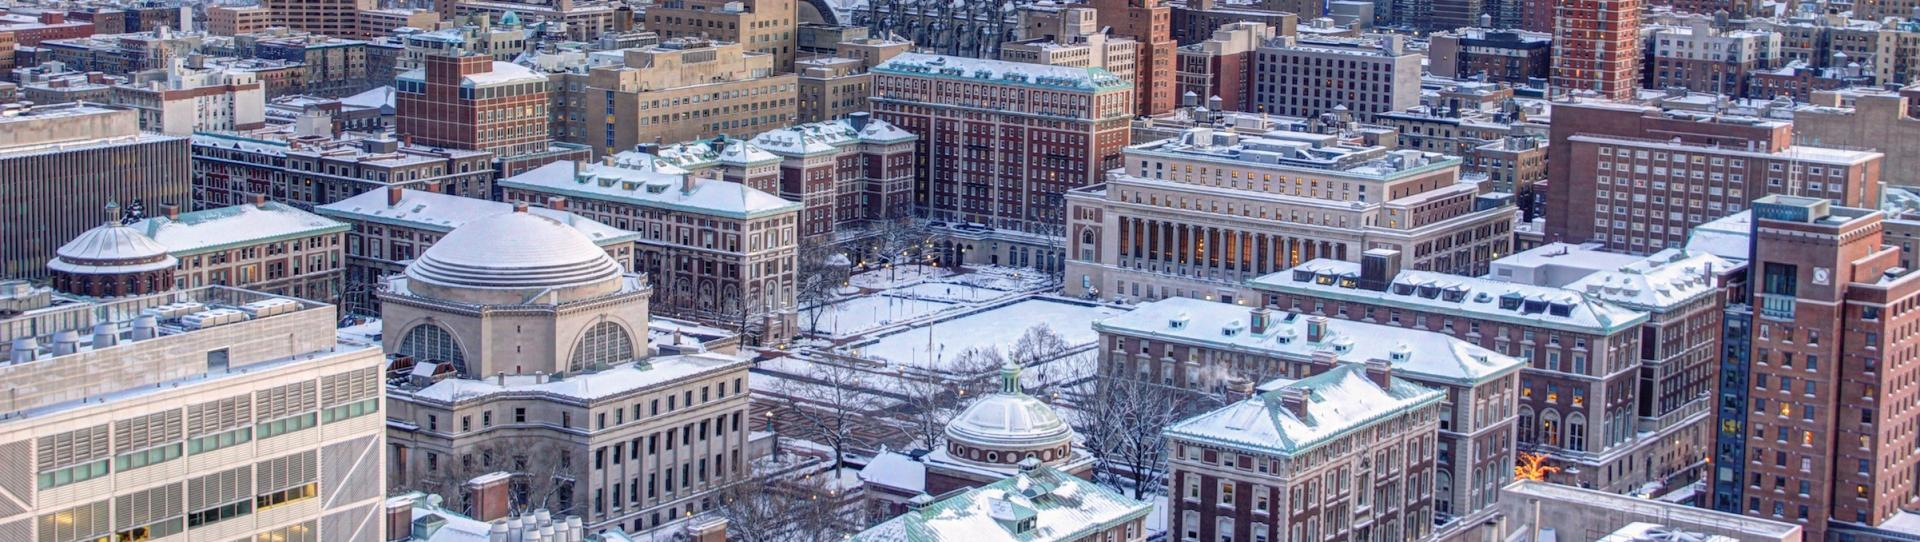 aerial shot of the Columbia University campus, covered in snow.